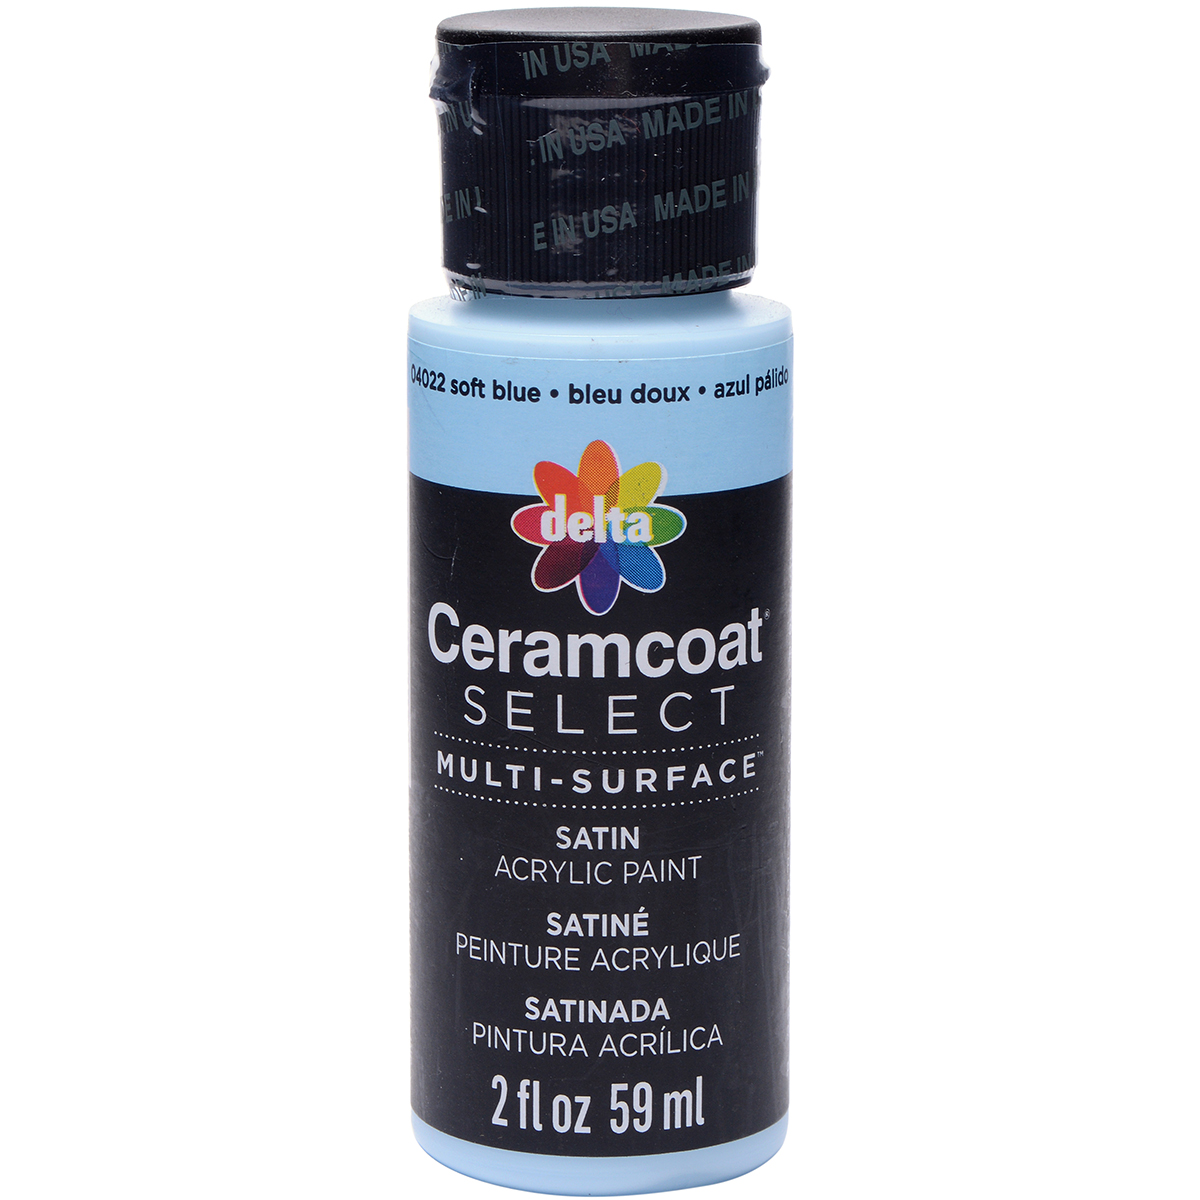 Ceramcoat Select Multi-Surface Paint 2oz-Soft Blue